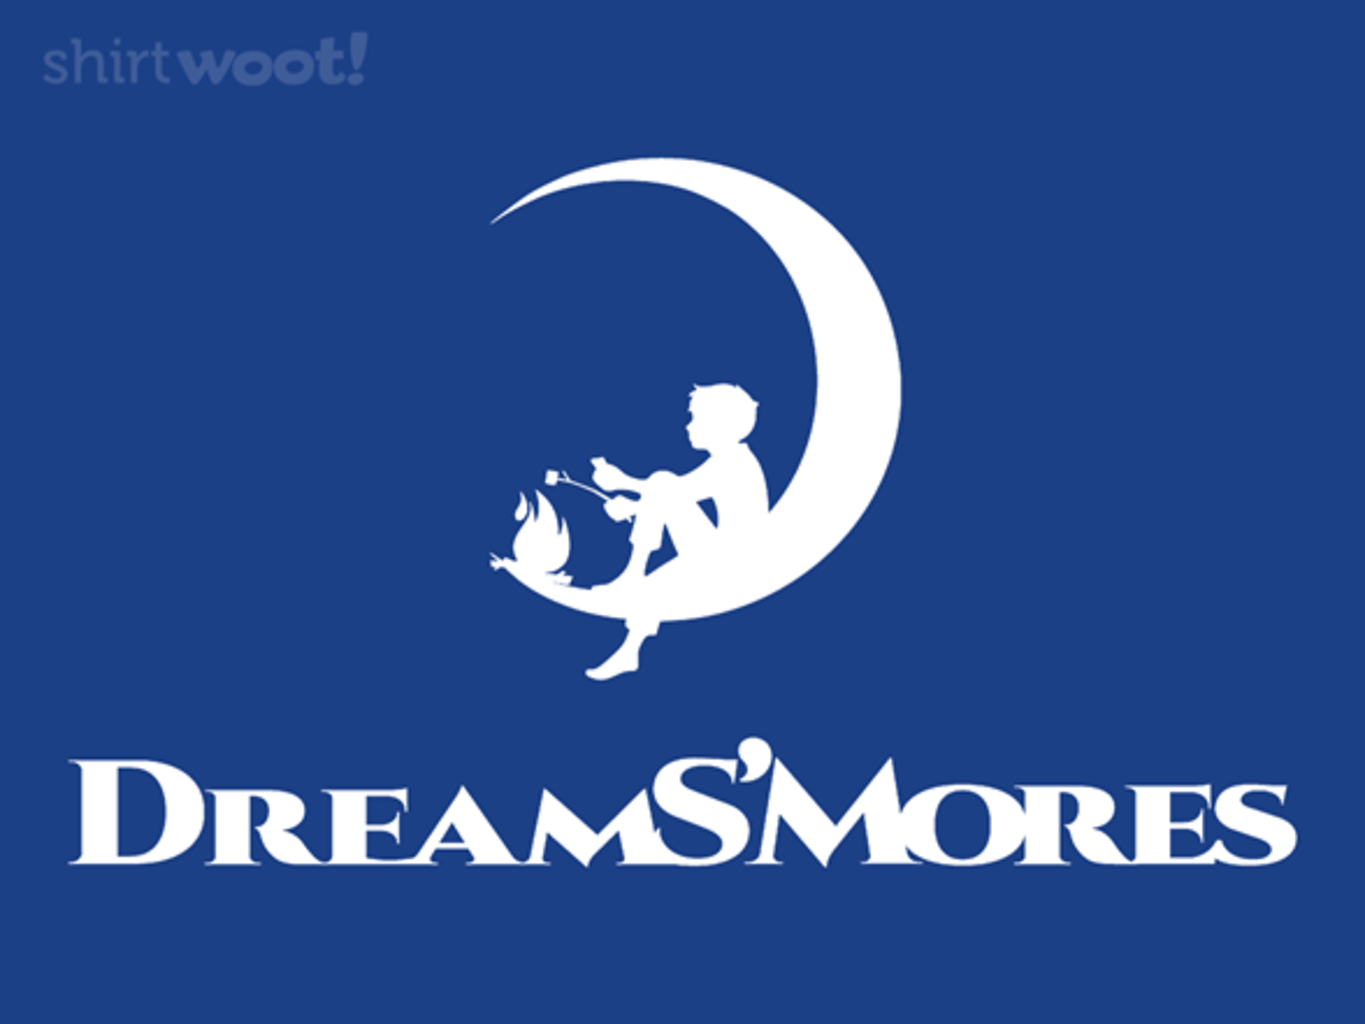 Woot!: Dreams`mores